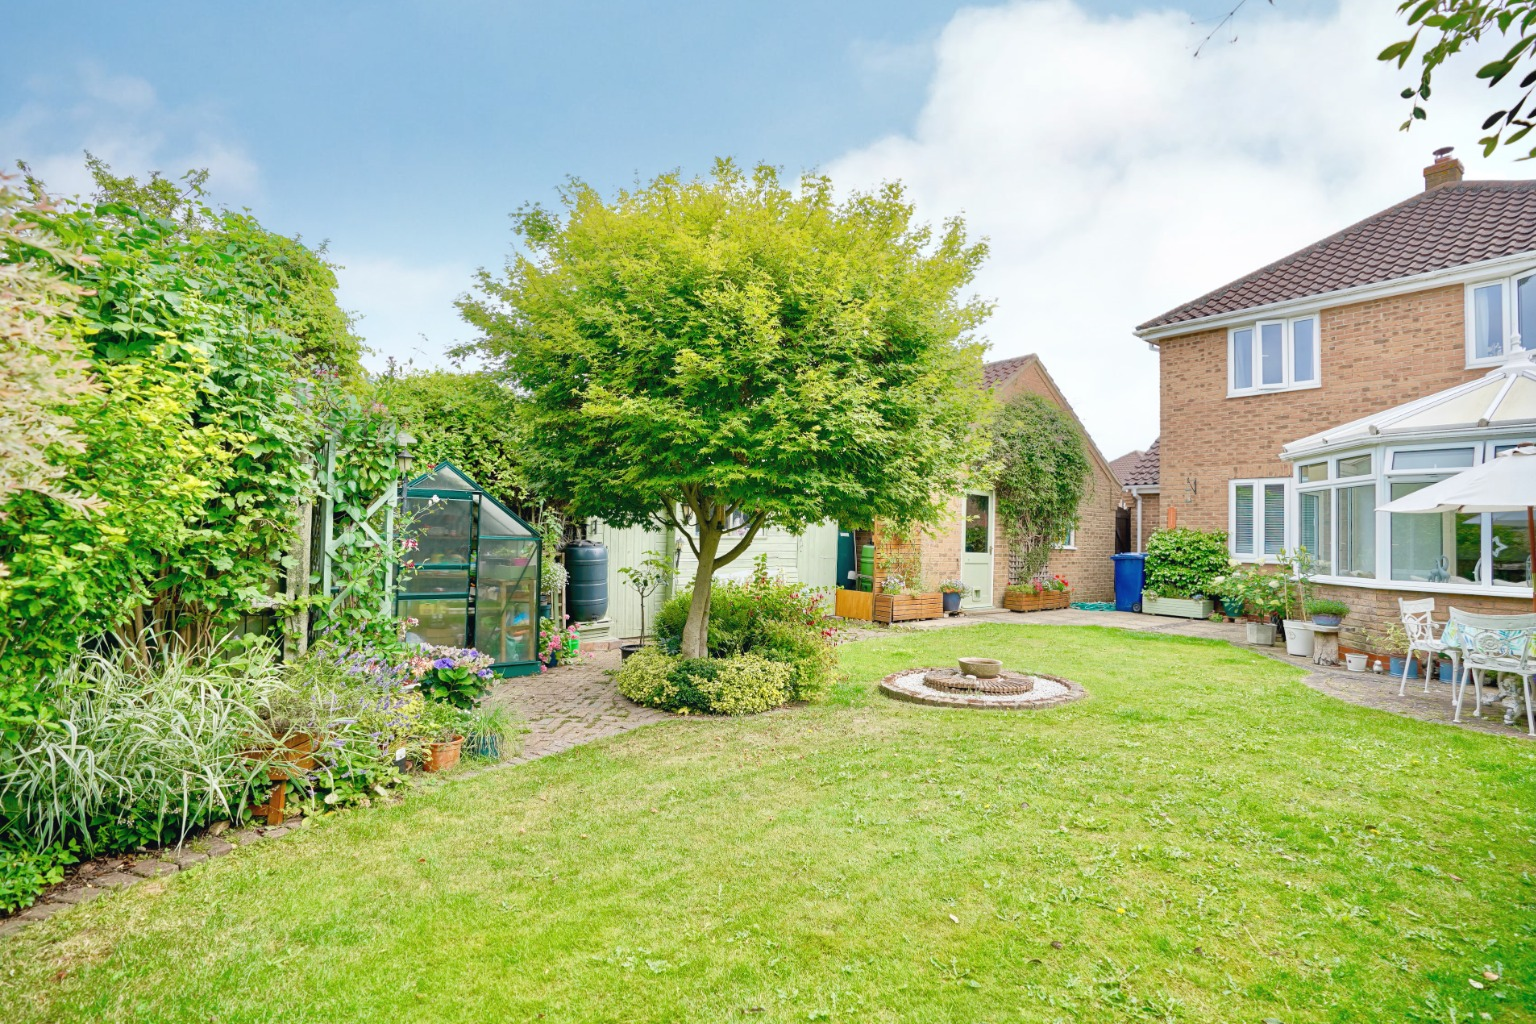 4 bed detached house for sale in Alsyke Close, Huntingdon 0